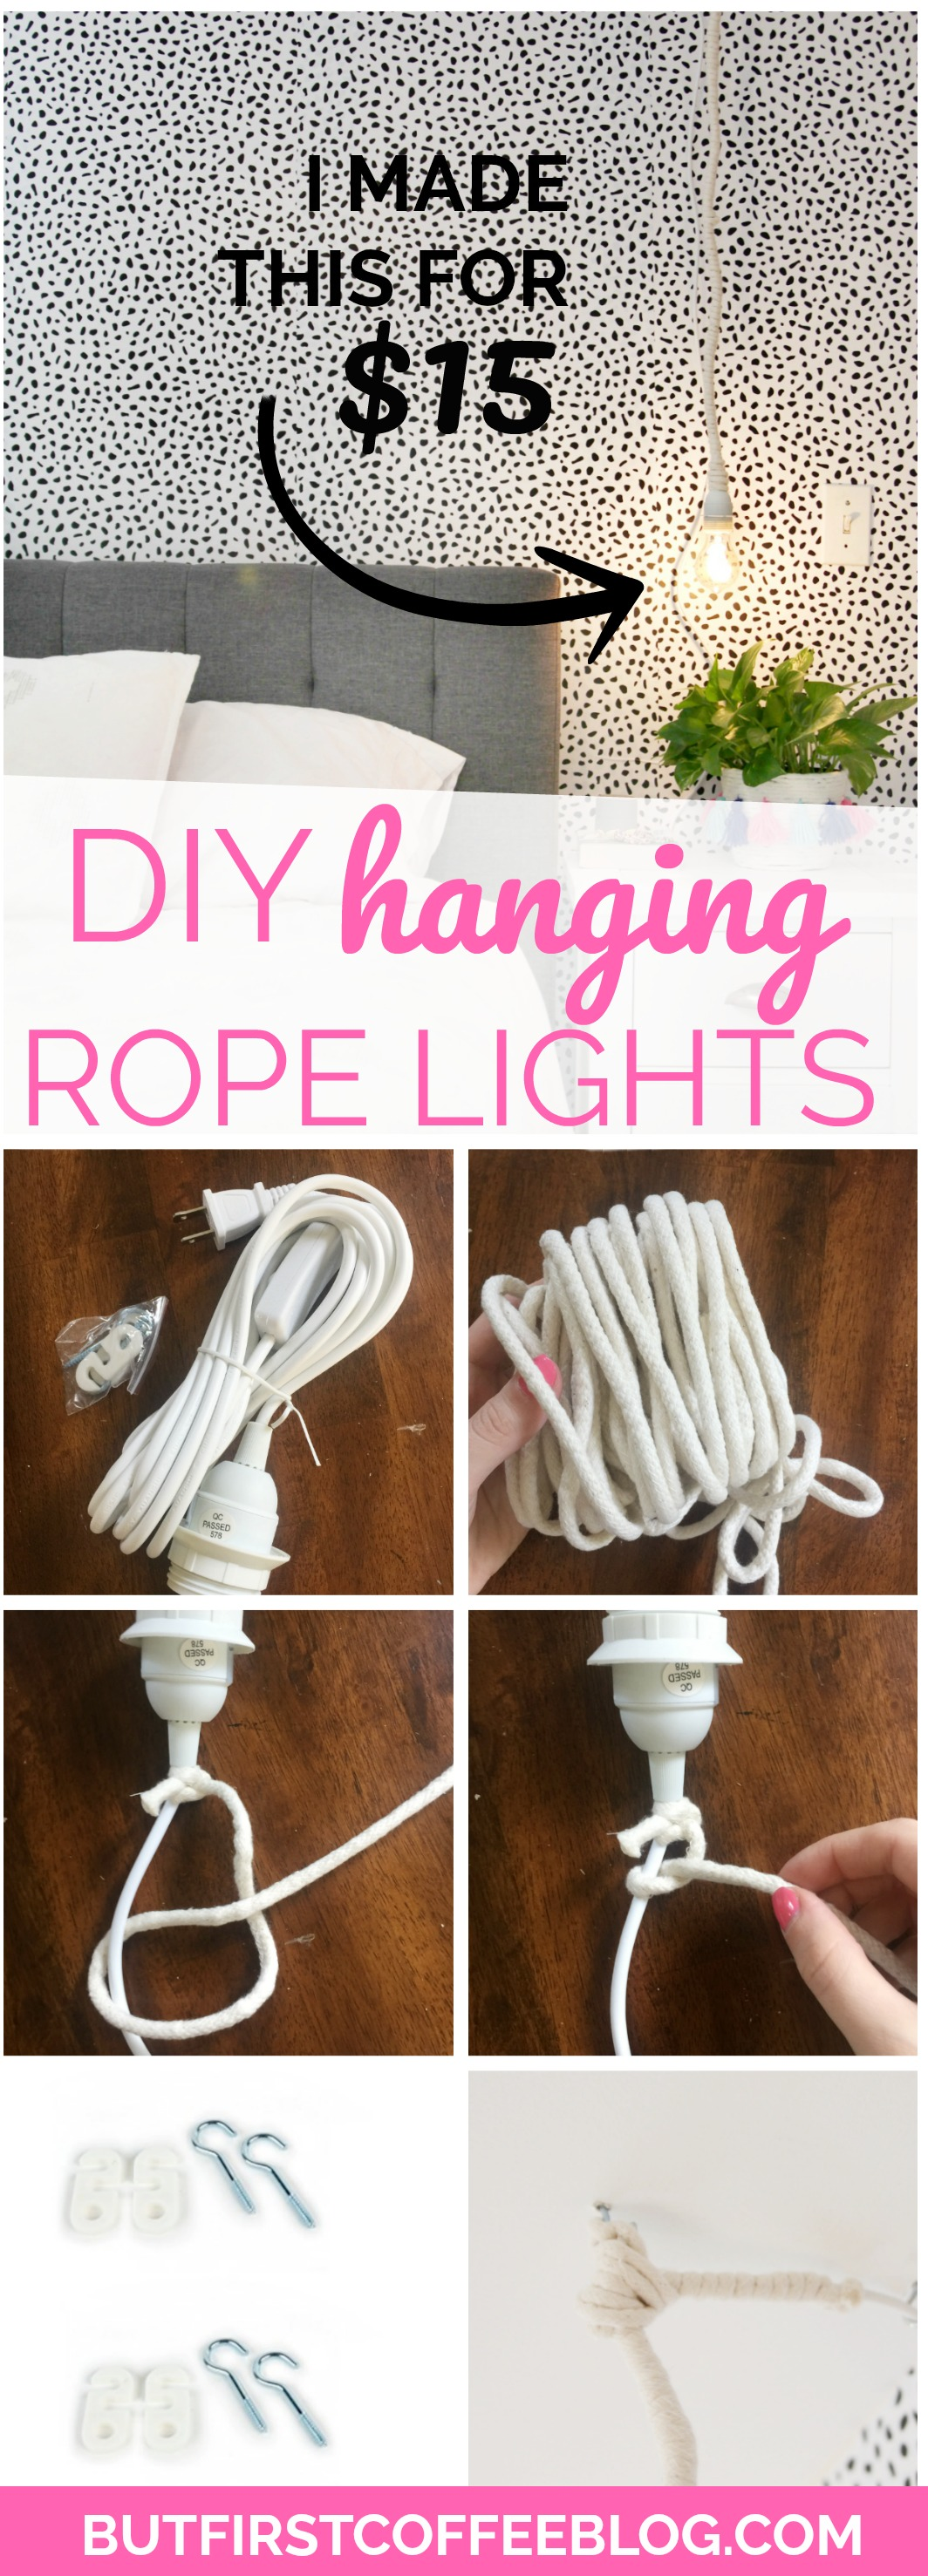 How To Make The Diy Hanging Rope Lights Loop Line Lamps